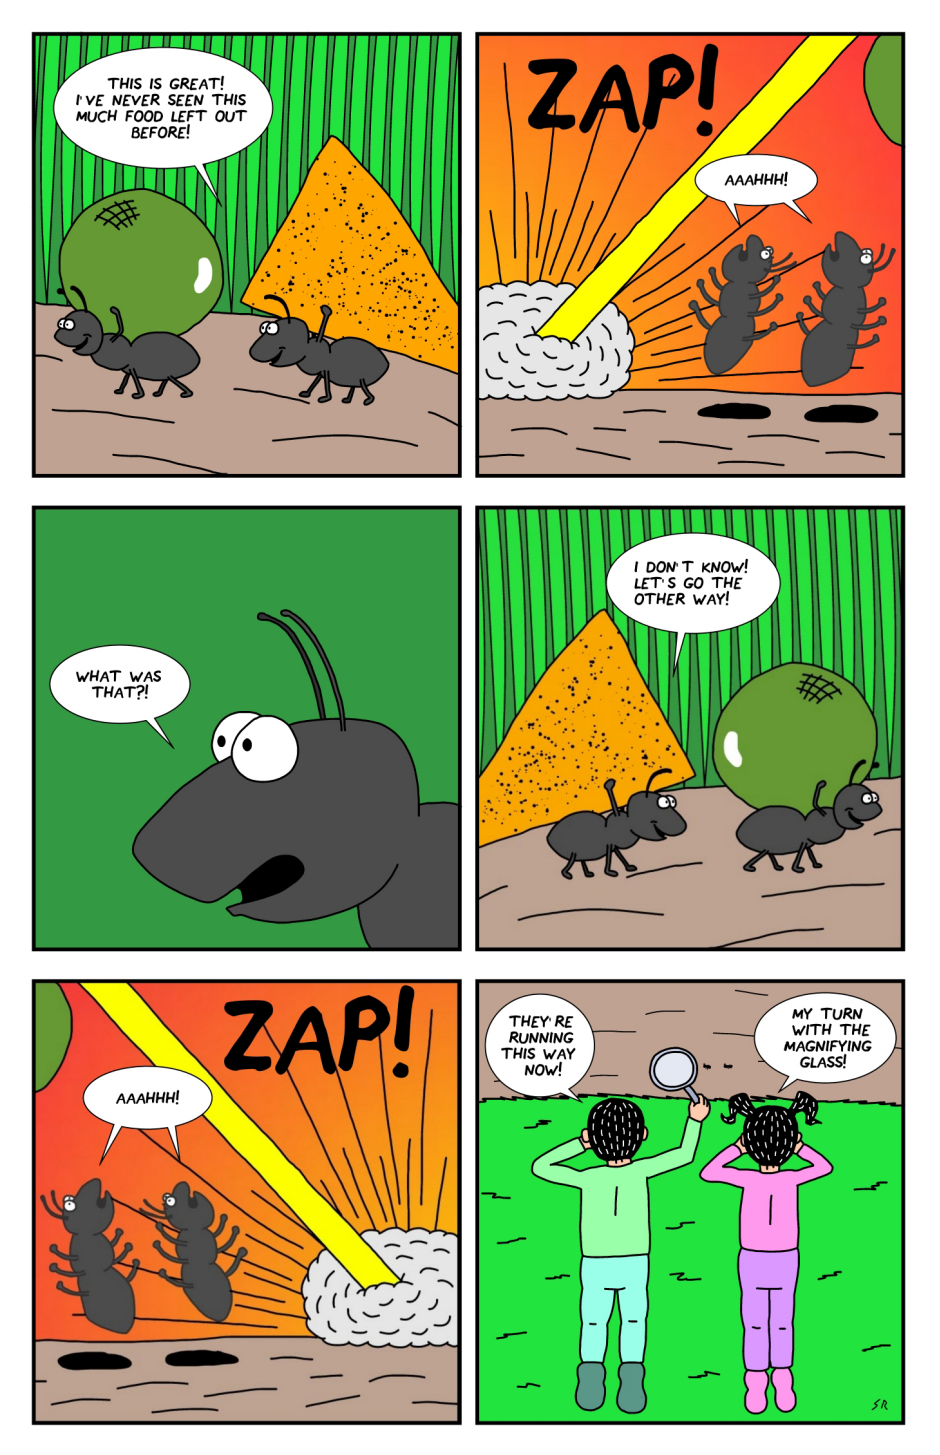 Ant problems